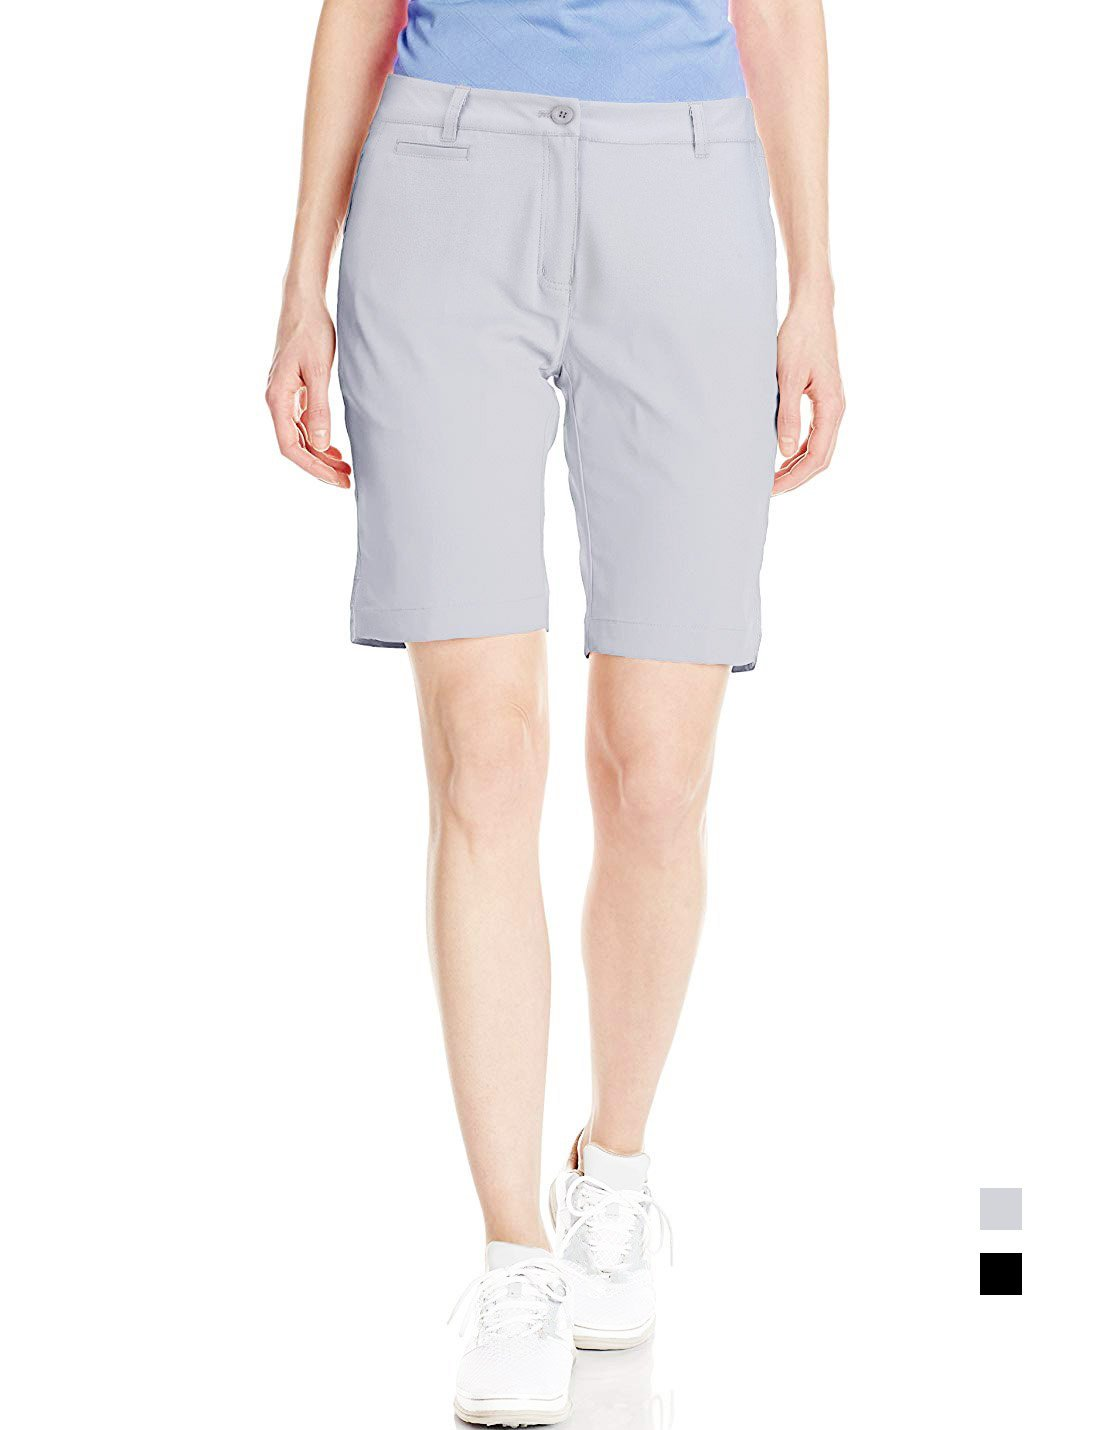 Golf Shorts Women Bermuda Stretch Chino Knee Length Twill Ladies Relaxed Fit